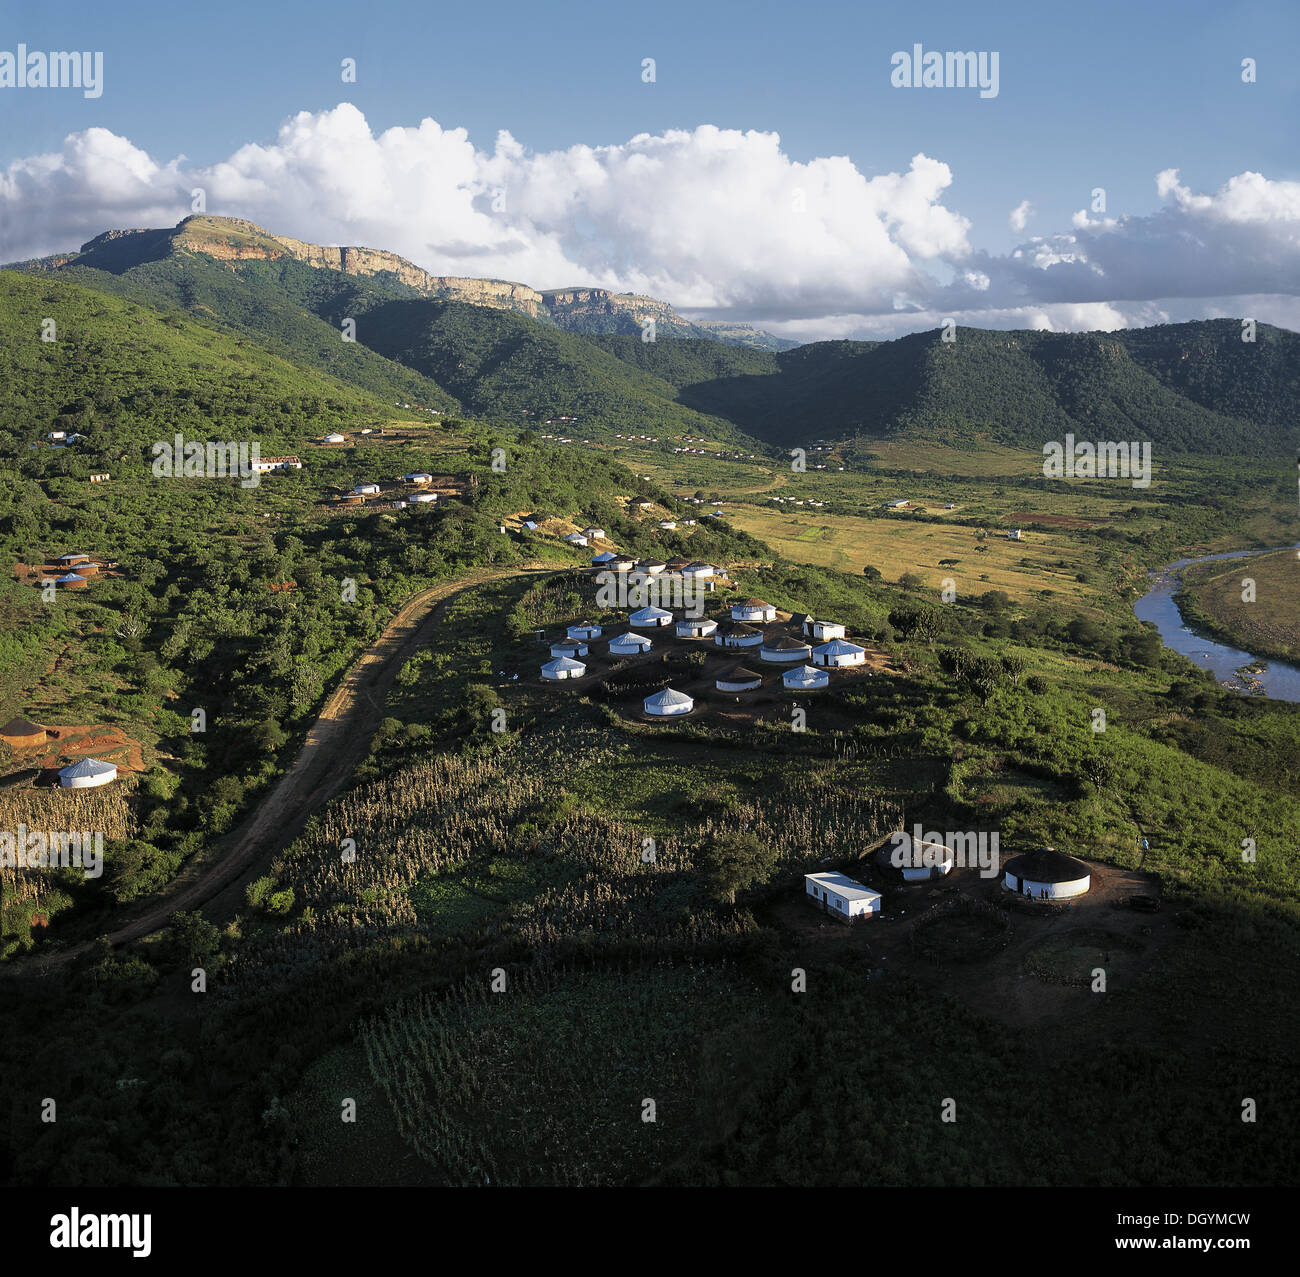 Umunzi, the Zulu Homestead consists of a circular enclave of dwellings, the home of a married man and his family. - Stock Image